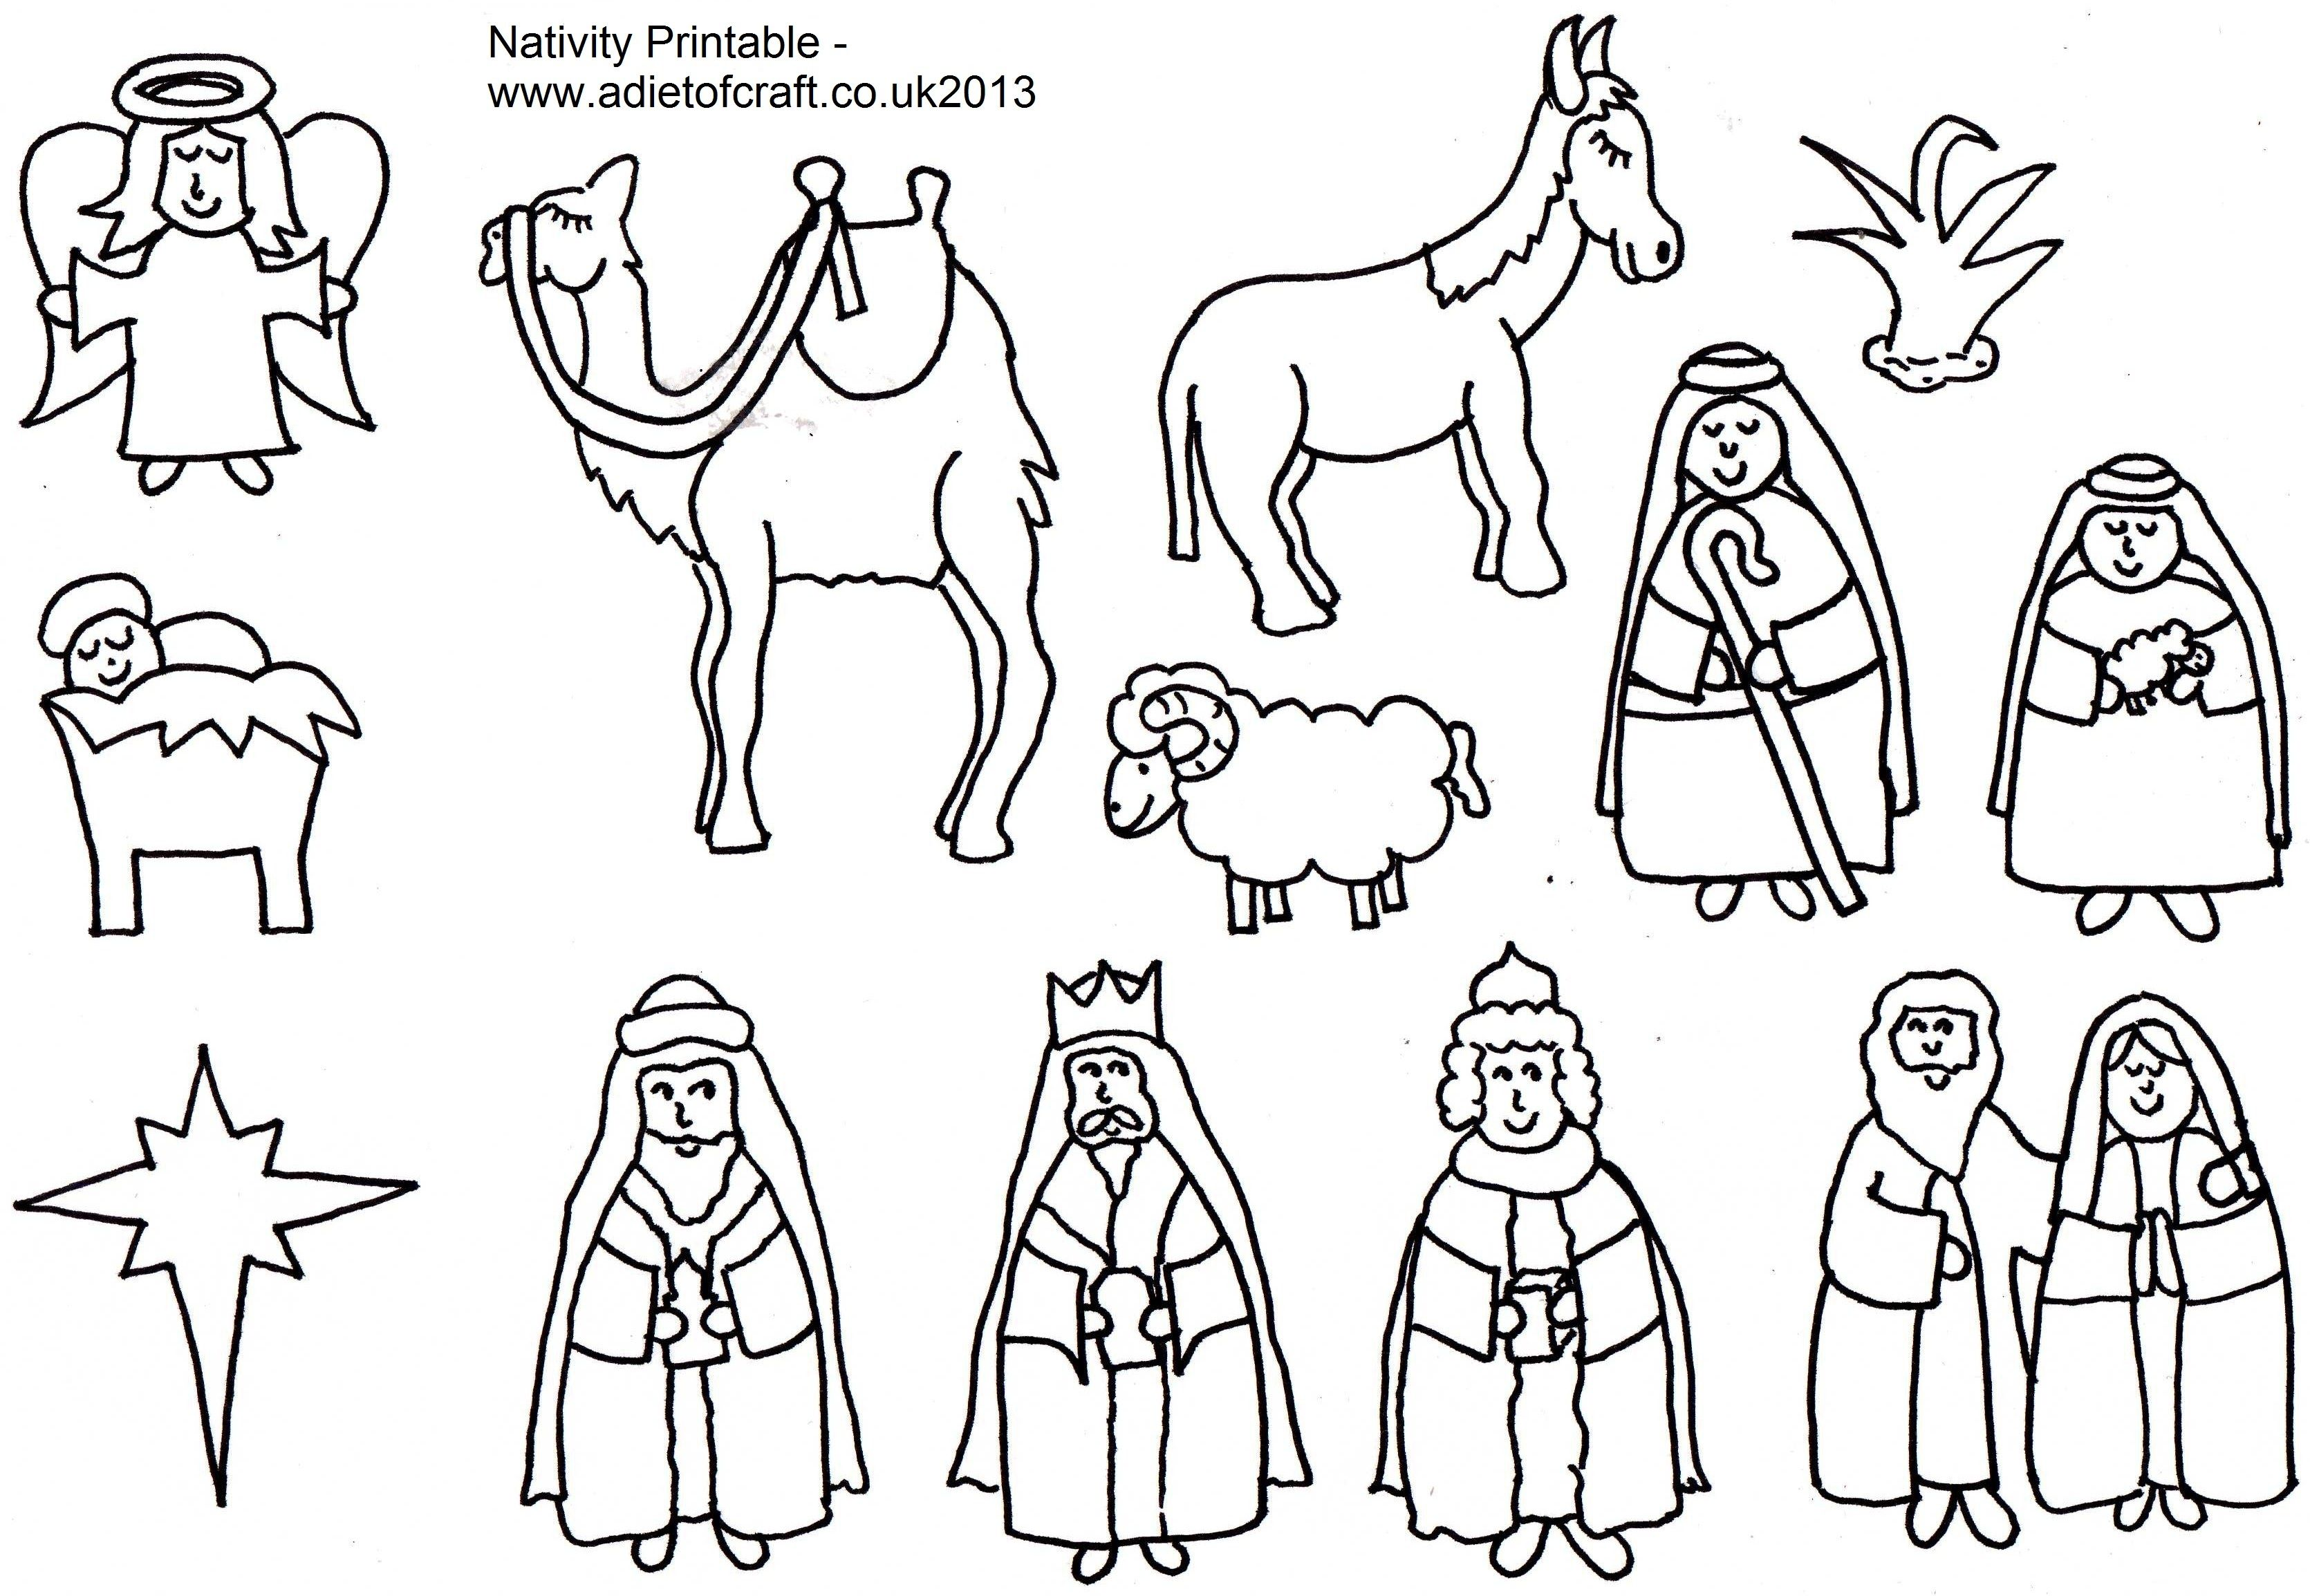 picture relating to Free Printable Christmas Nativity Colouring Pages identify Grownup Coloring Internet pages Of The Nativity Absolutely free Inside Nativity